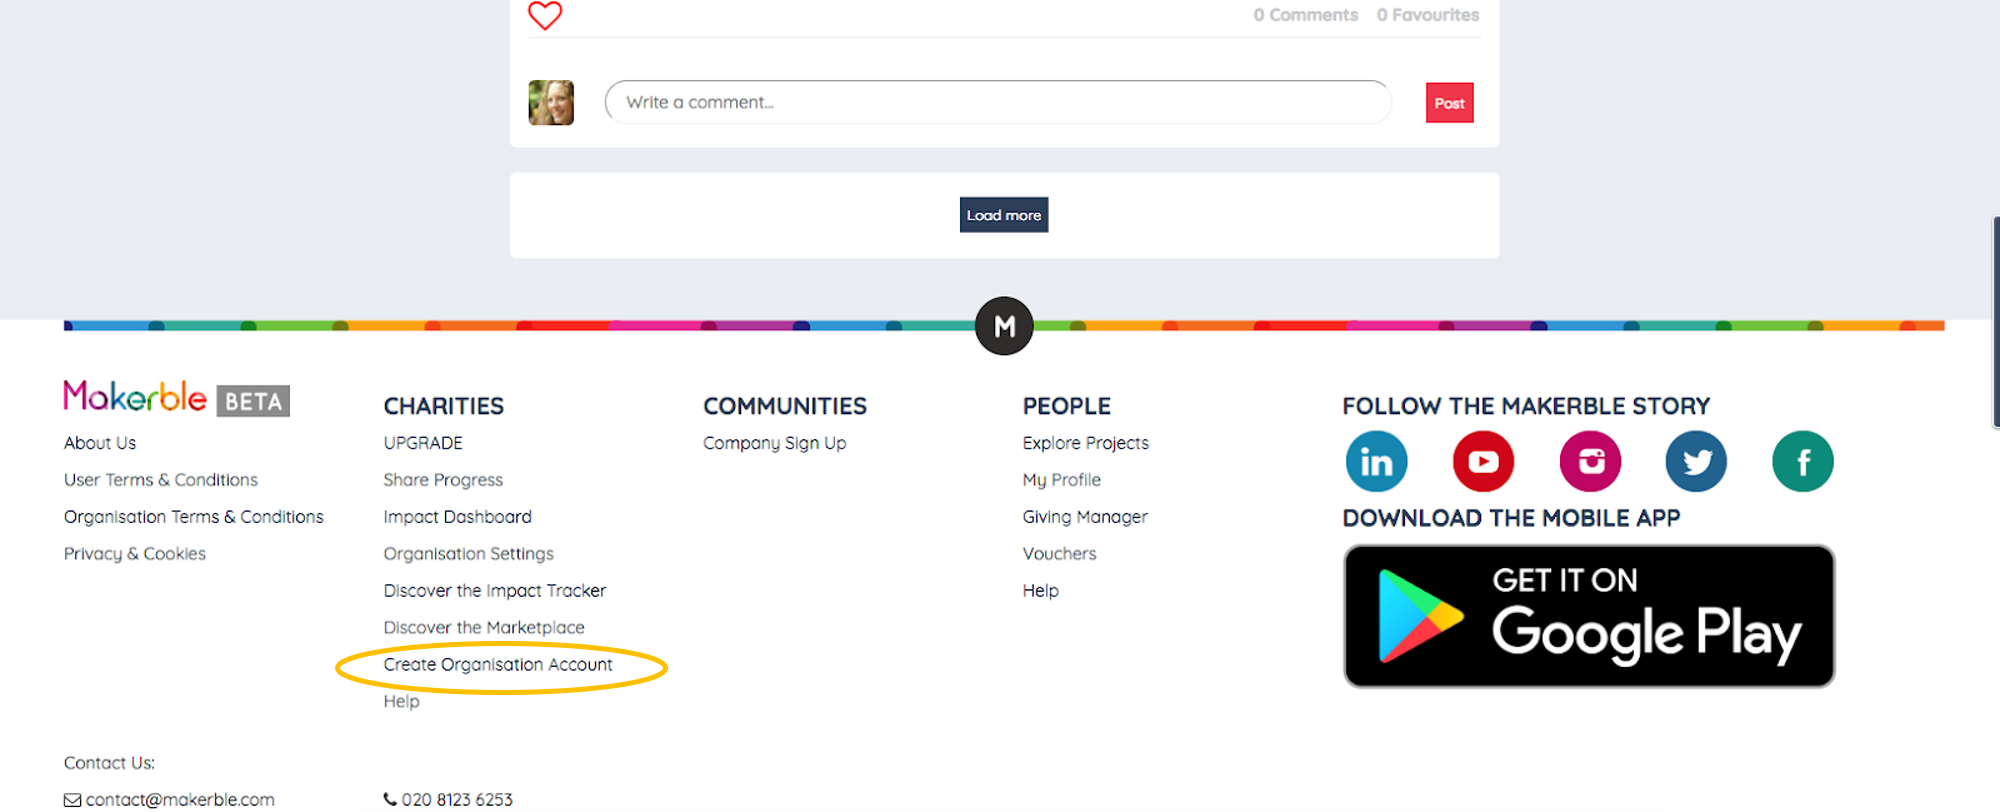 - 1. Scroll down to the bottom of the page and click on 'Create Organisation Account' as indicated.